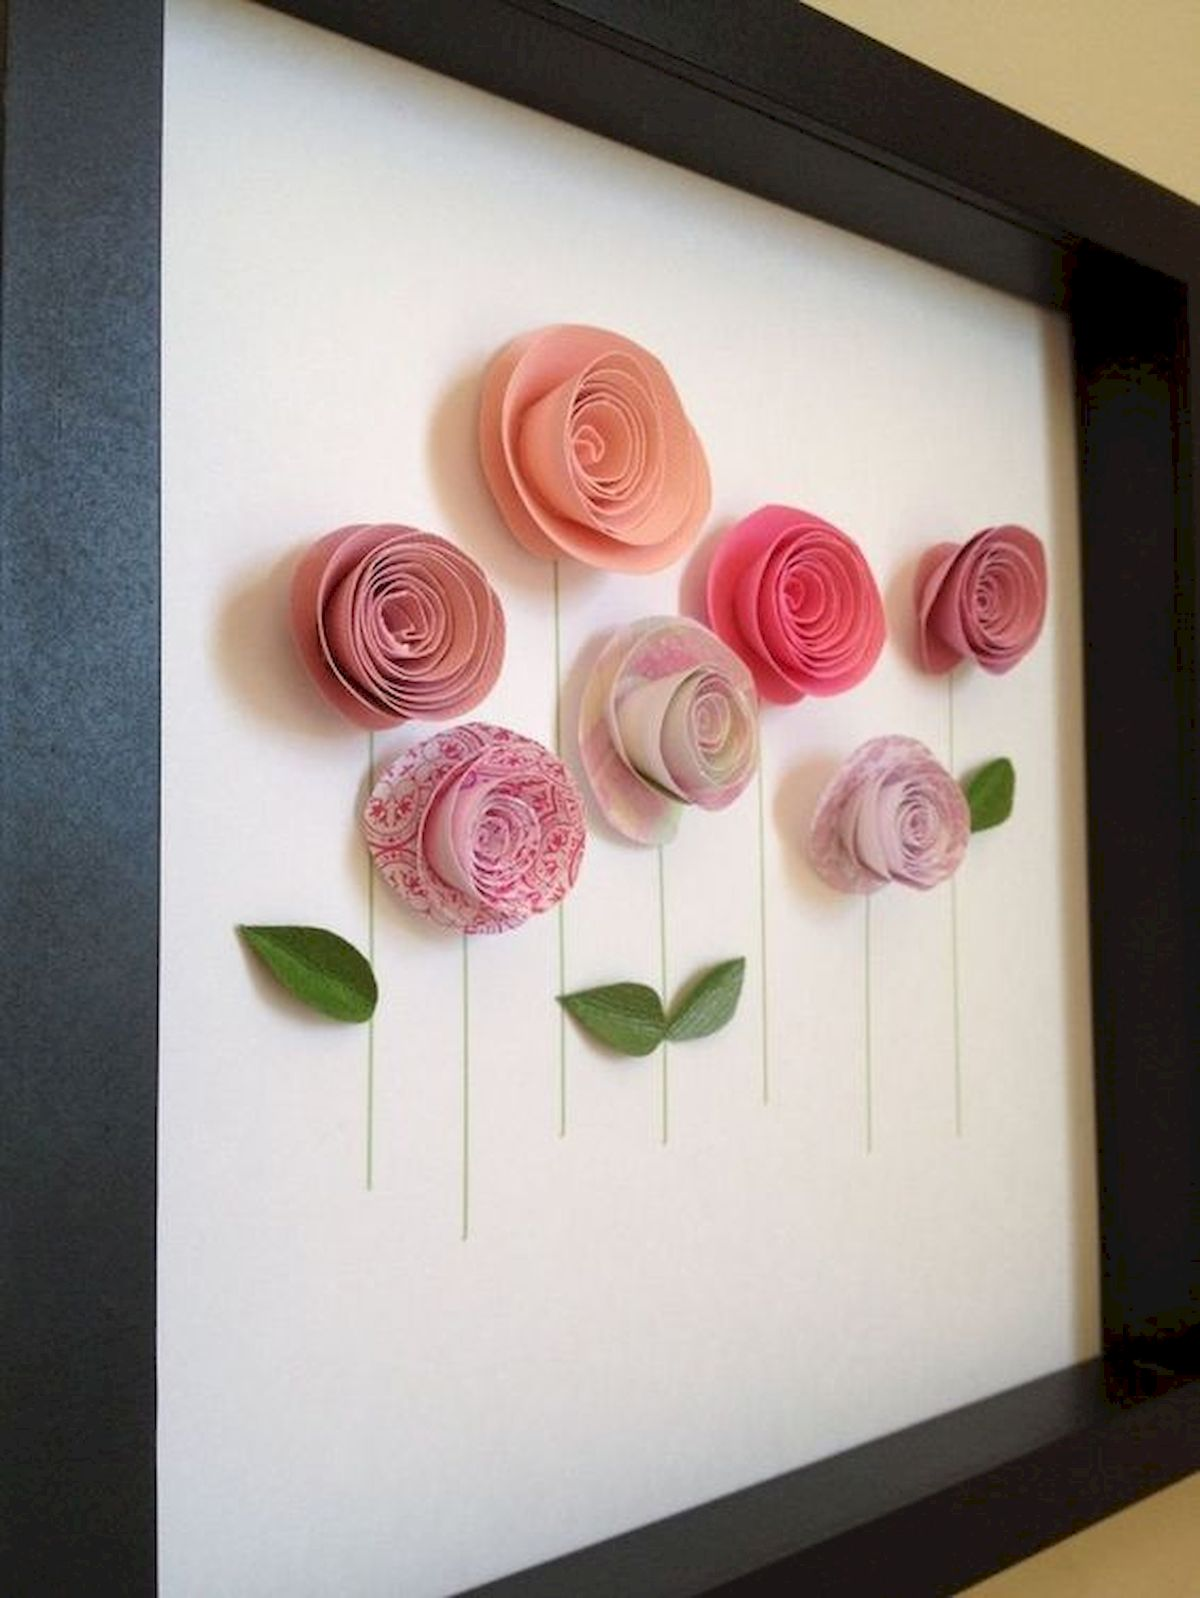 30 Easy and Creative DIY Wall Art Ideas For Decoration (4)